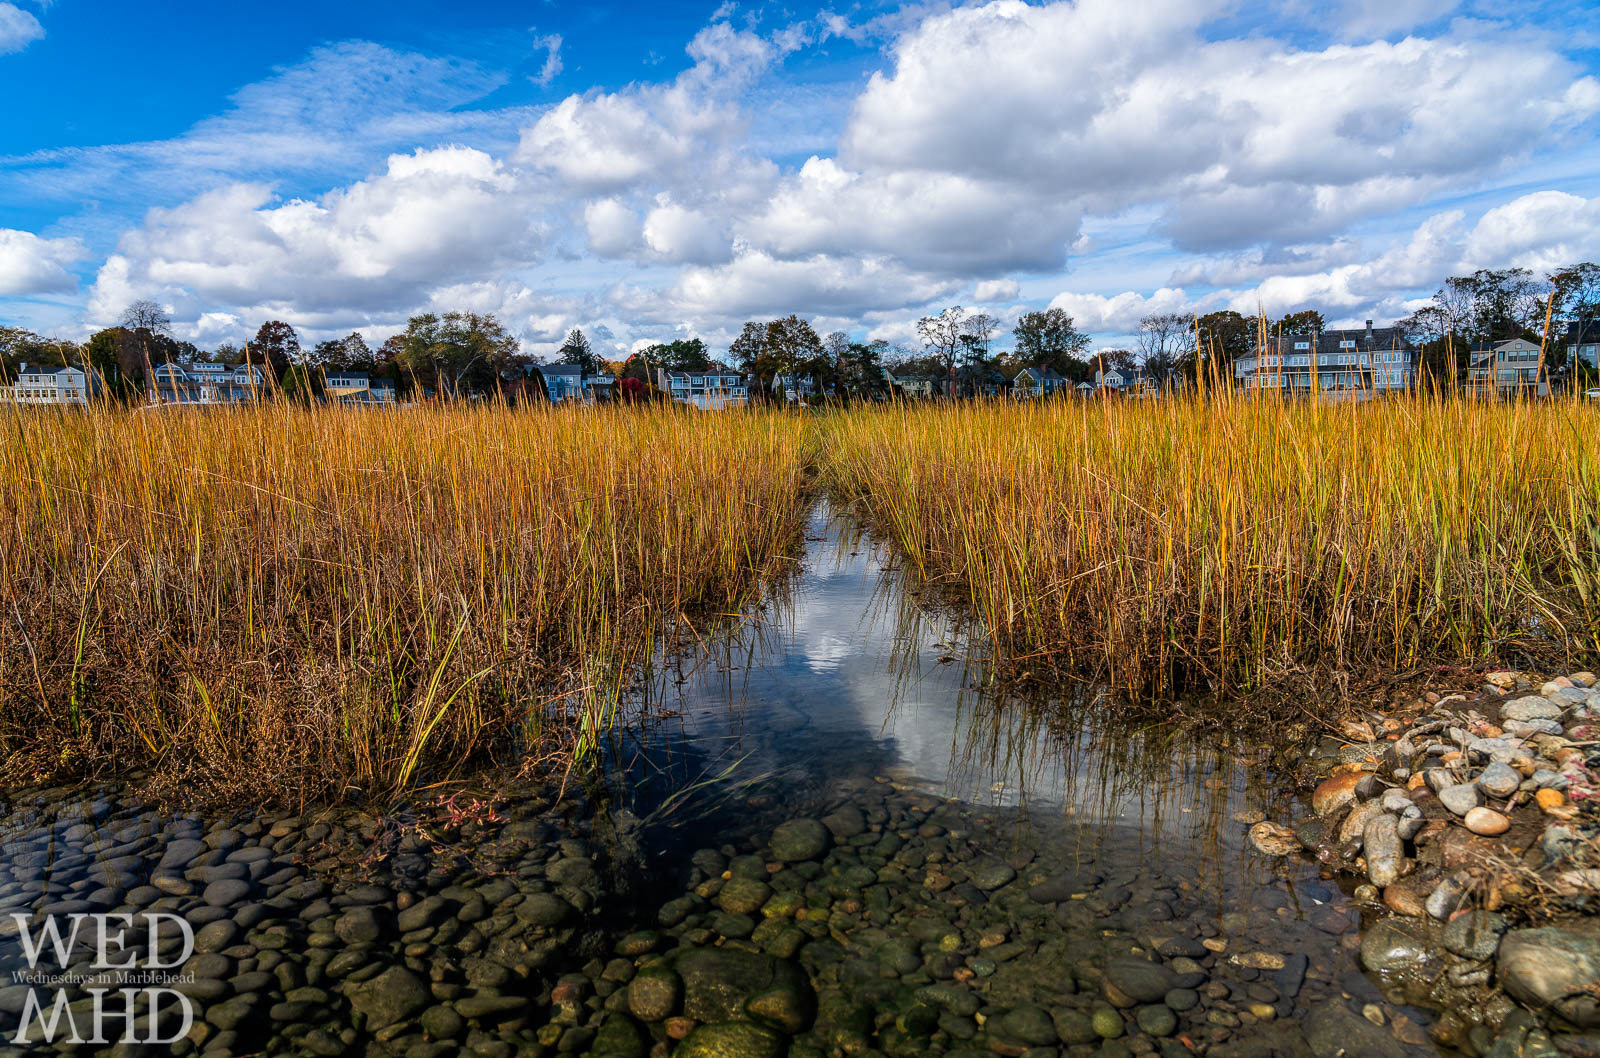 A fall afternoon at the Goldthwait Reservation at high tide allowed me to explore reflections in the tall grass under a cloudy sky